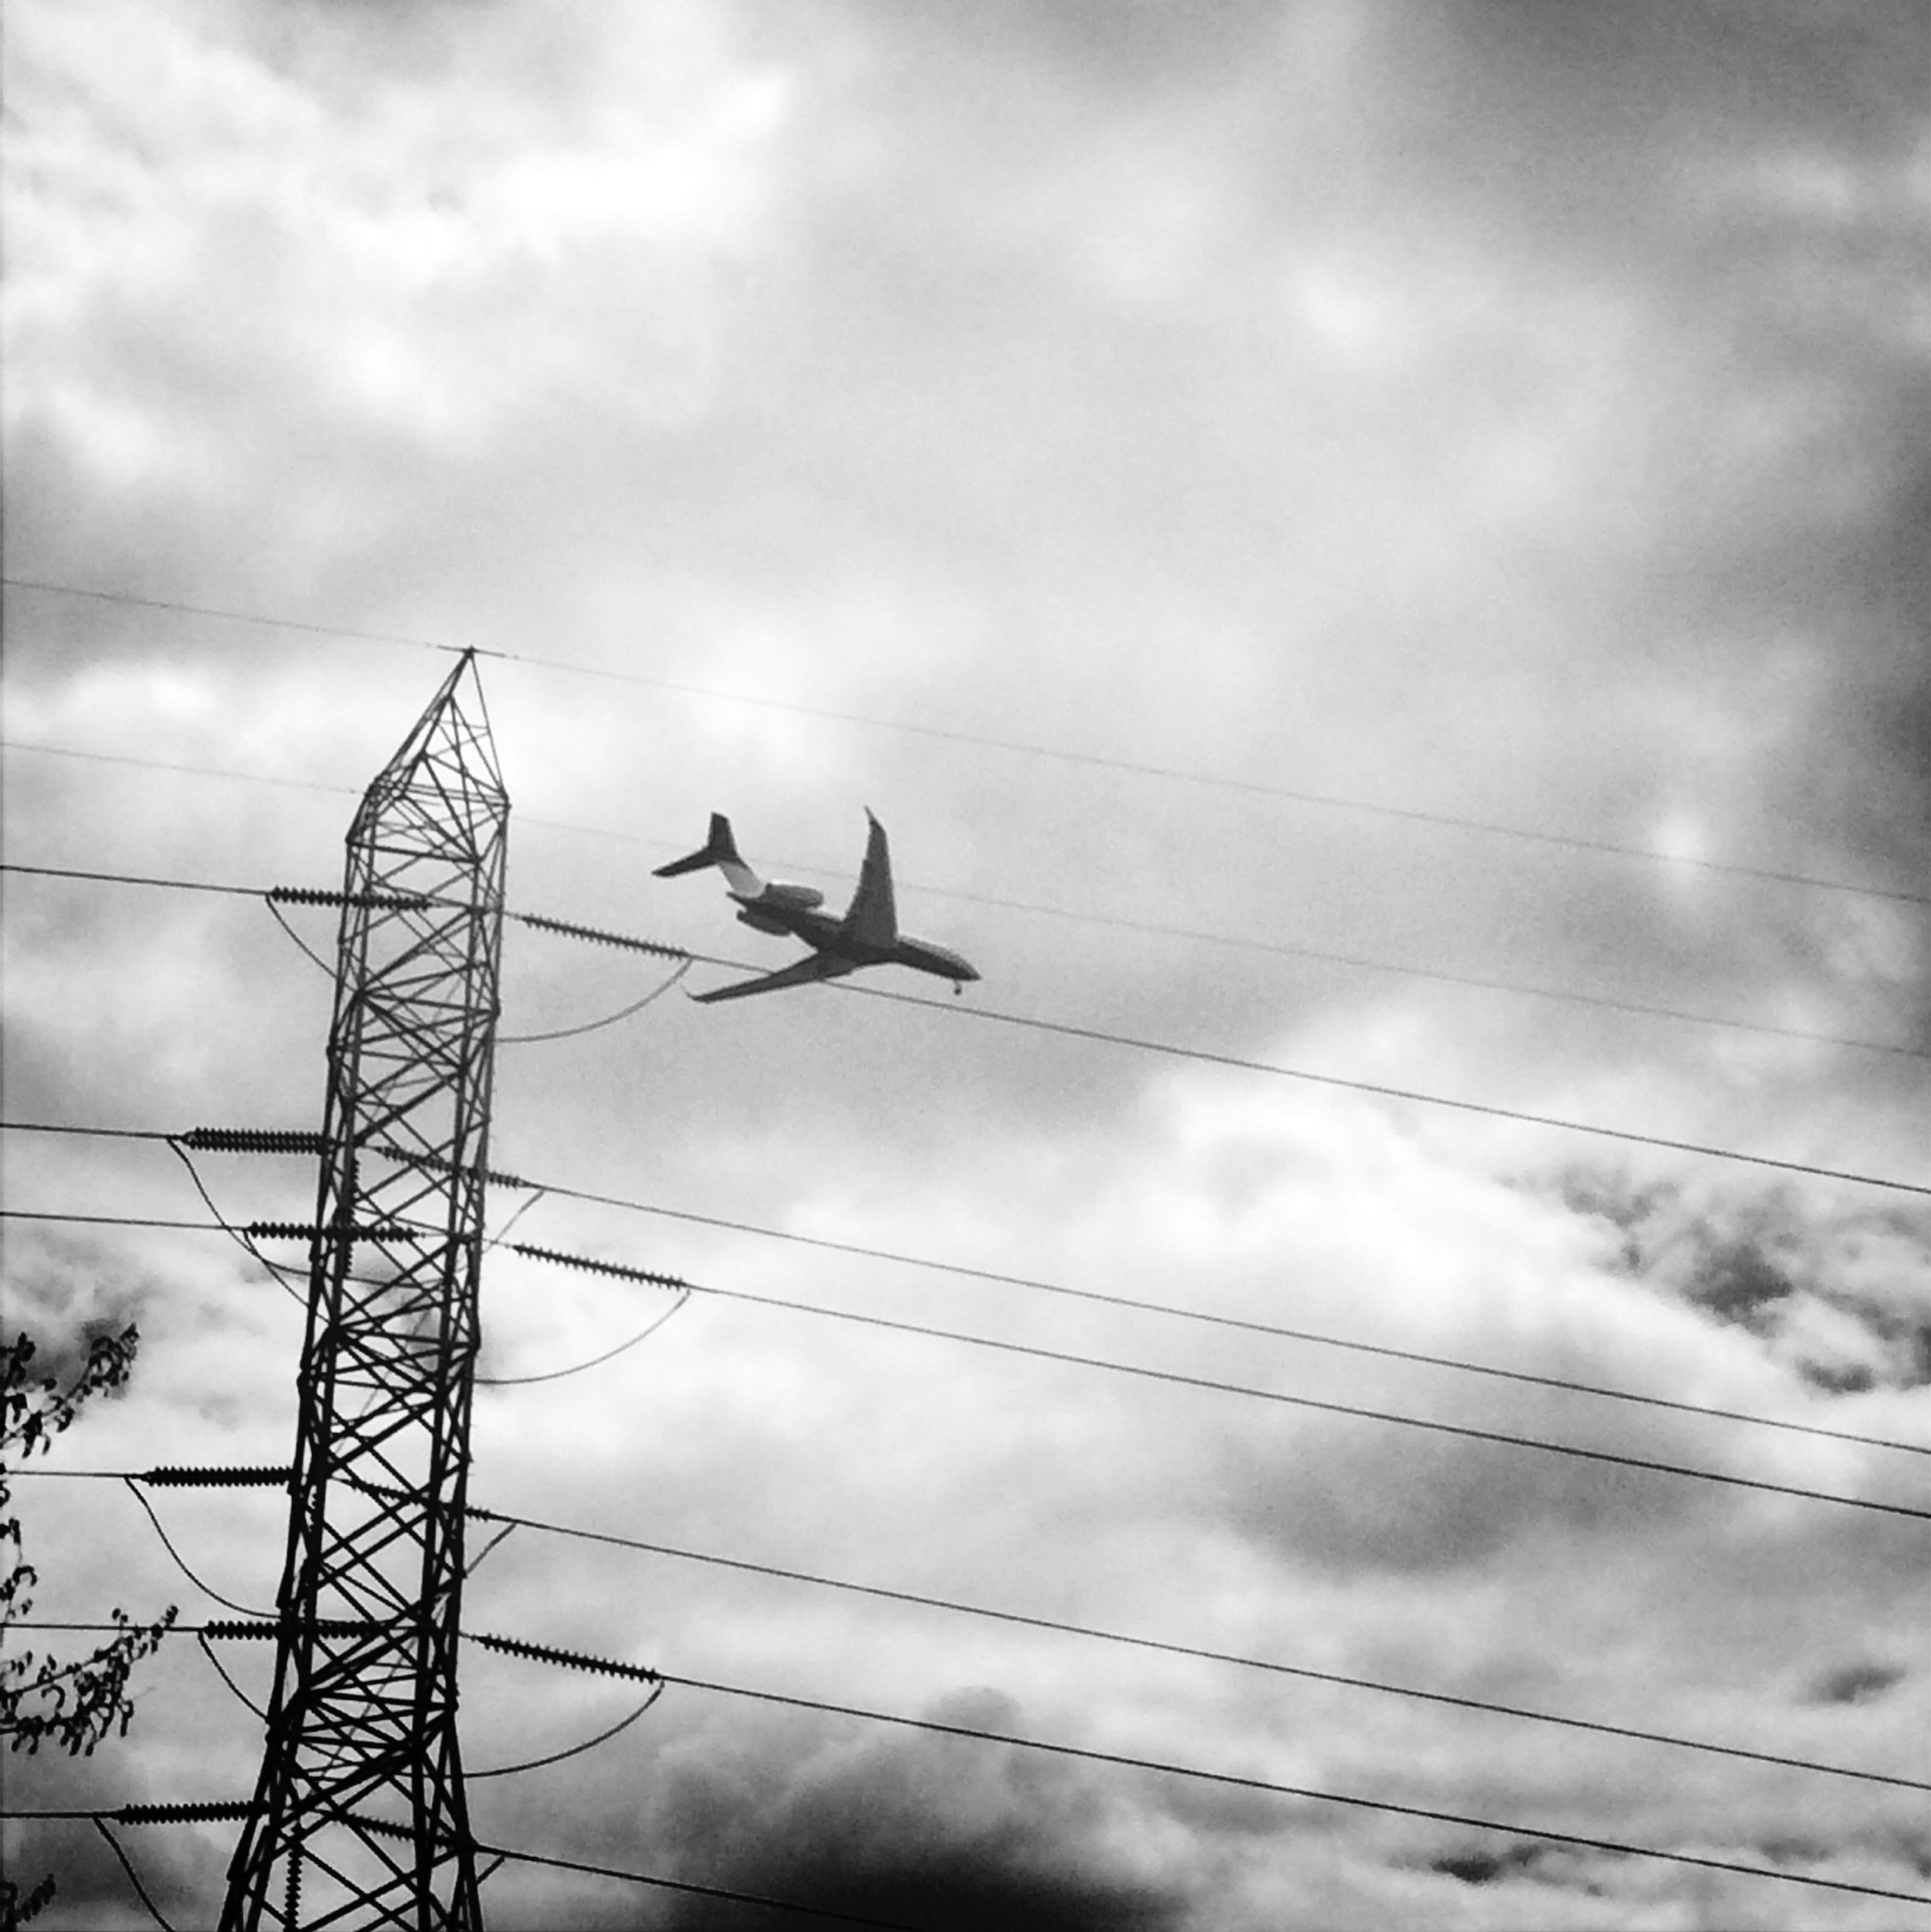 low angle view, animal themes, bird, animals in the wild, sky, wildlife, power line, connection, cable, cloud - sky, perching, electricity, cloudy, electricity pylon, power supply, one animal, silhouette, cloud, flying, outdoors